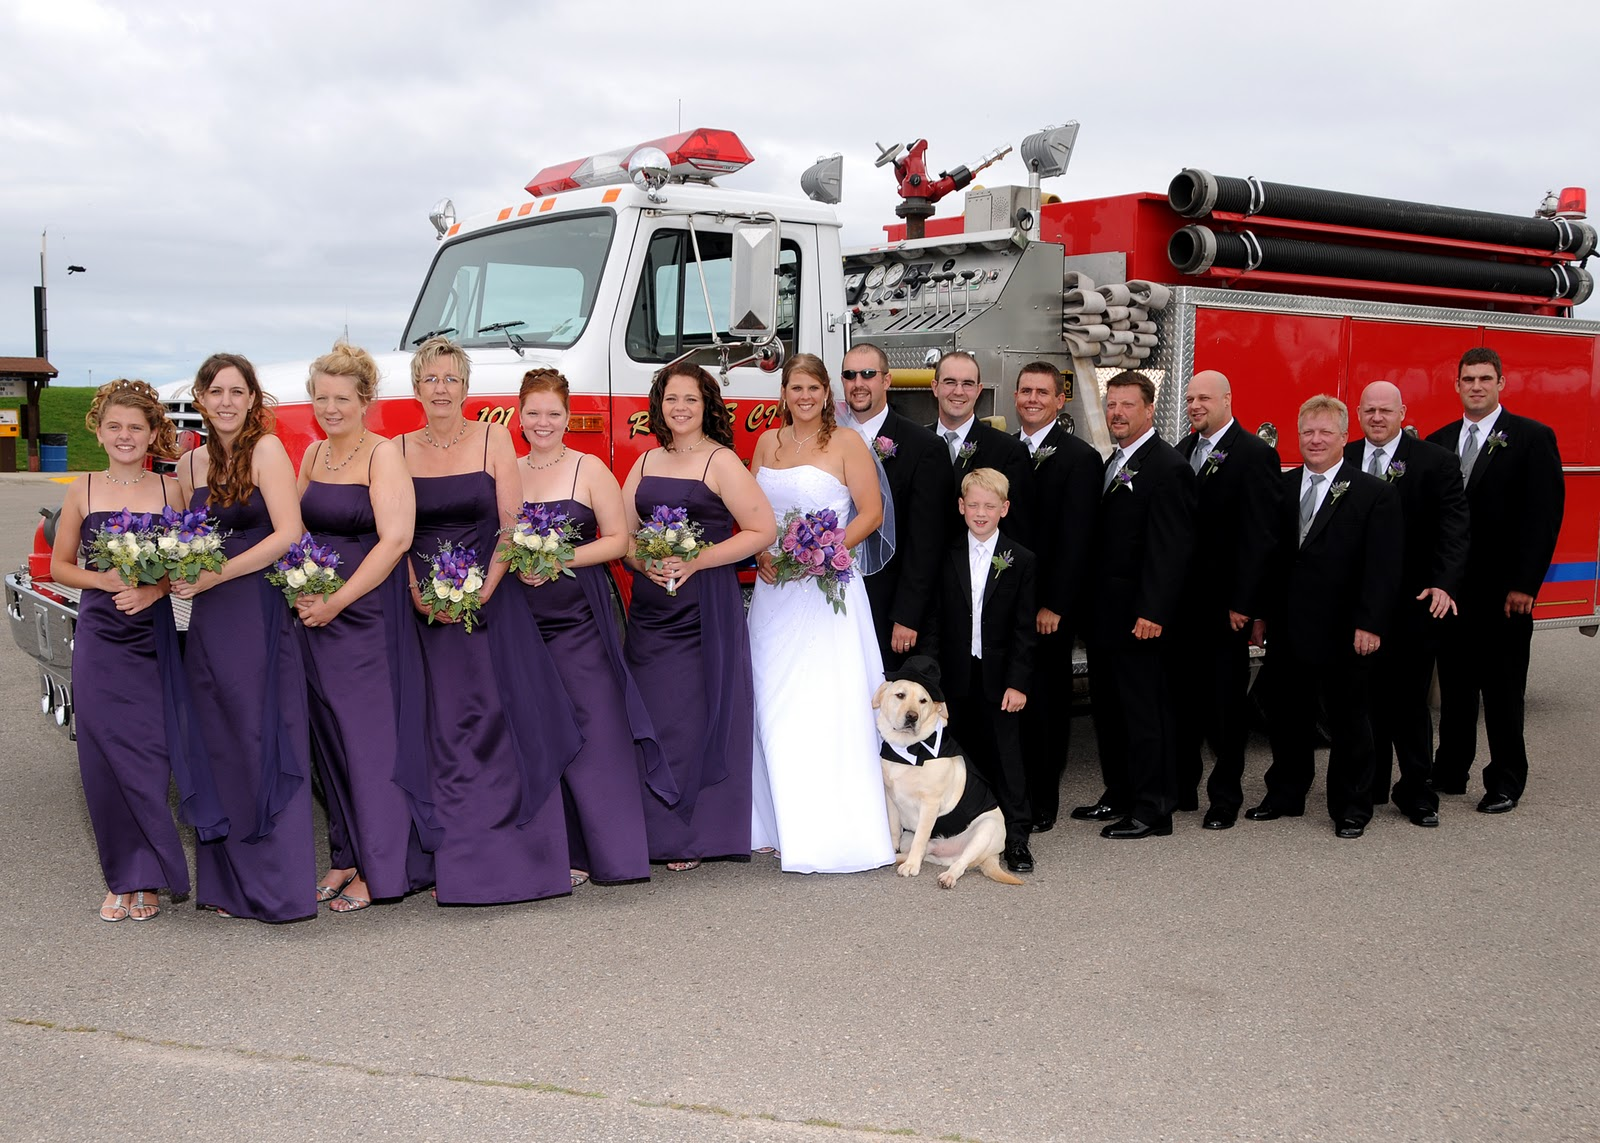 Explore Firefighter Wedding And More Source Rogers City Manager S Blog Fire Department Ashley Skowronek